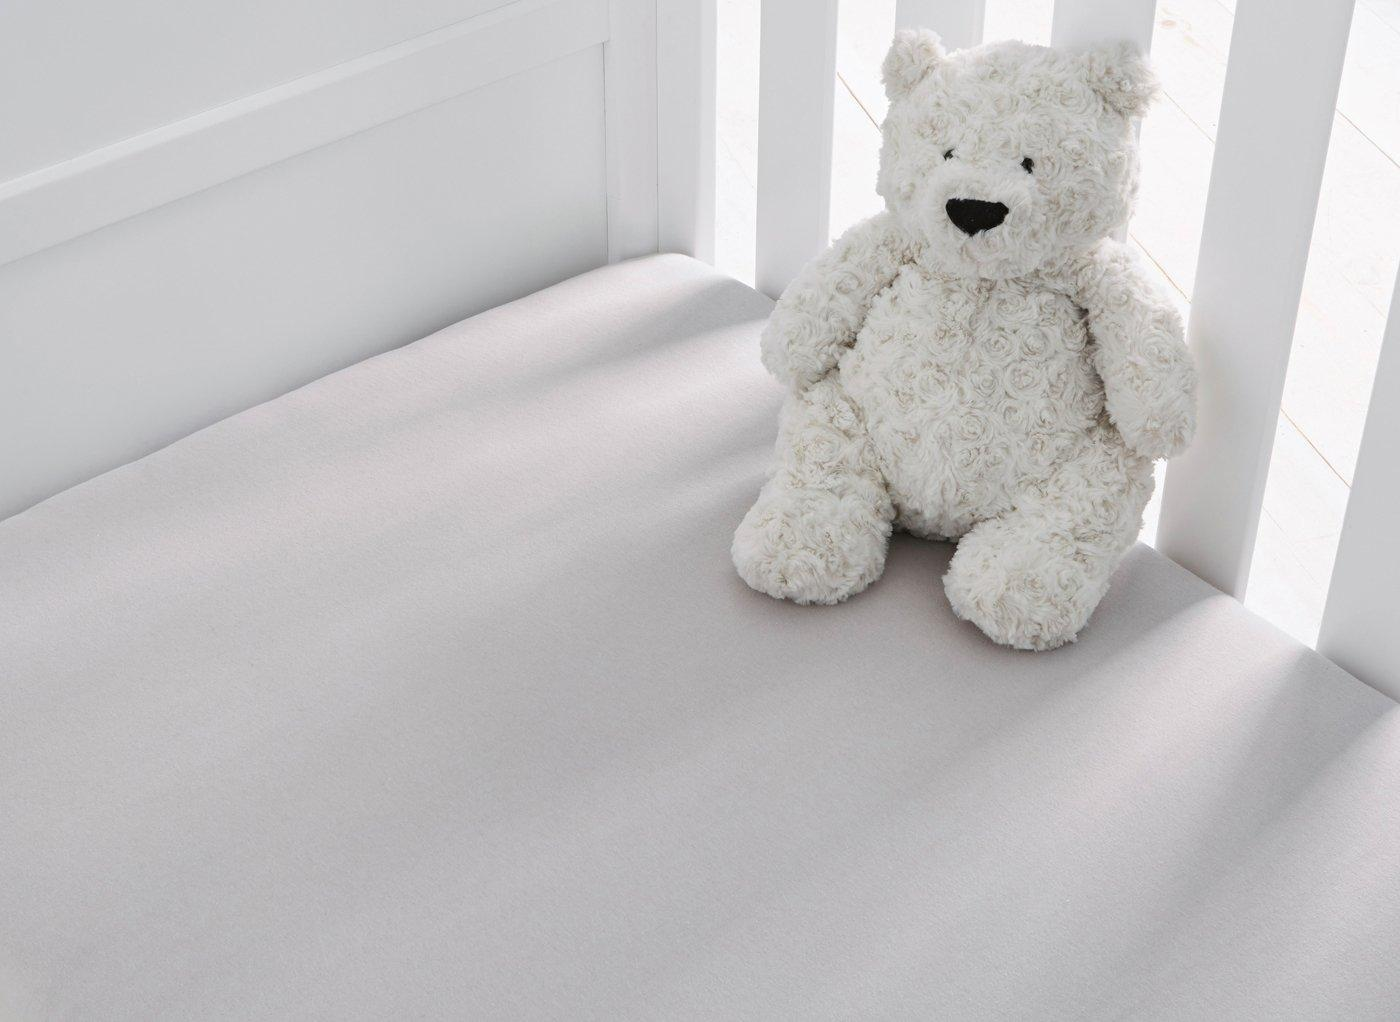 Silentnight Junior Jersey Fitted Sheet (£23)